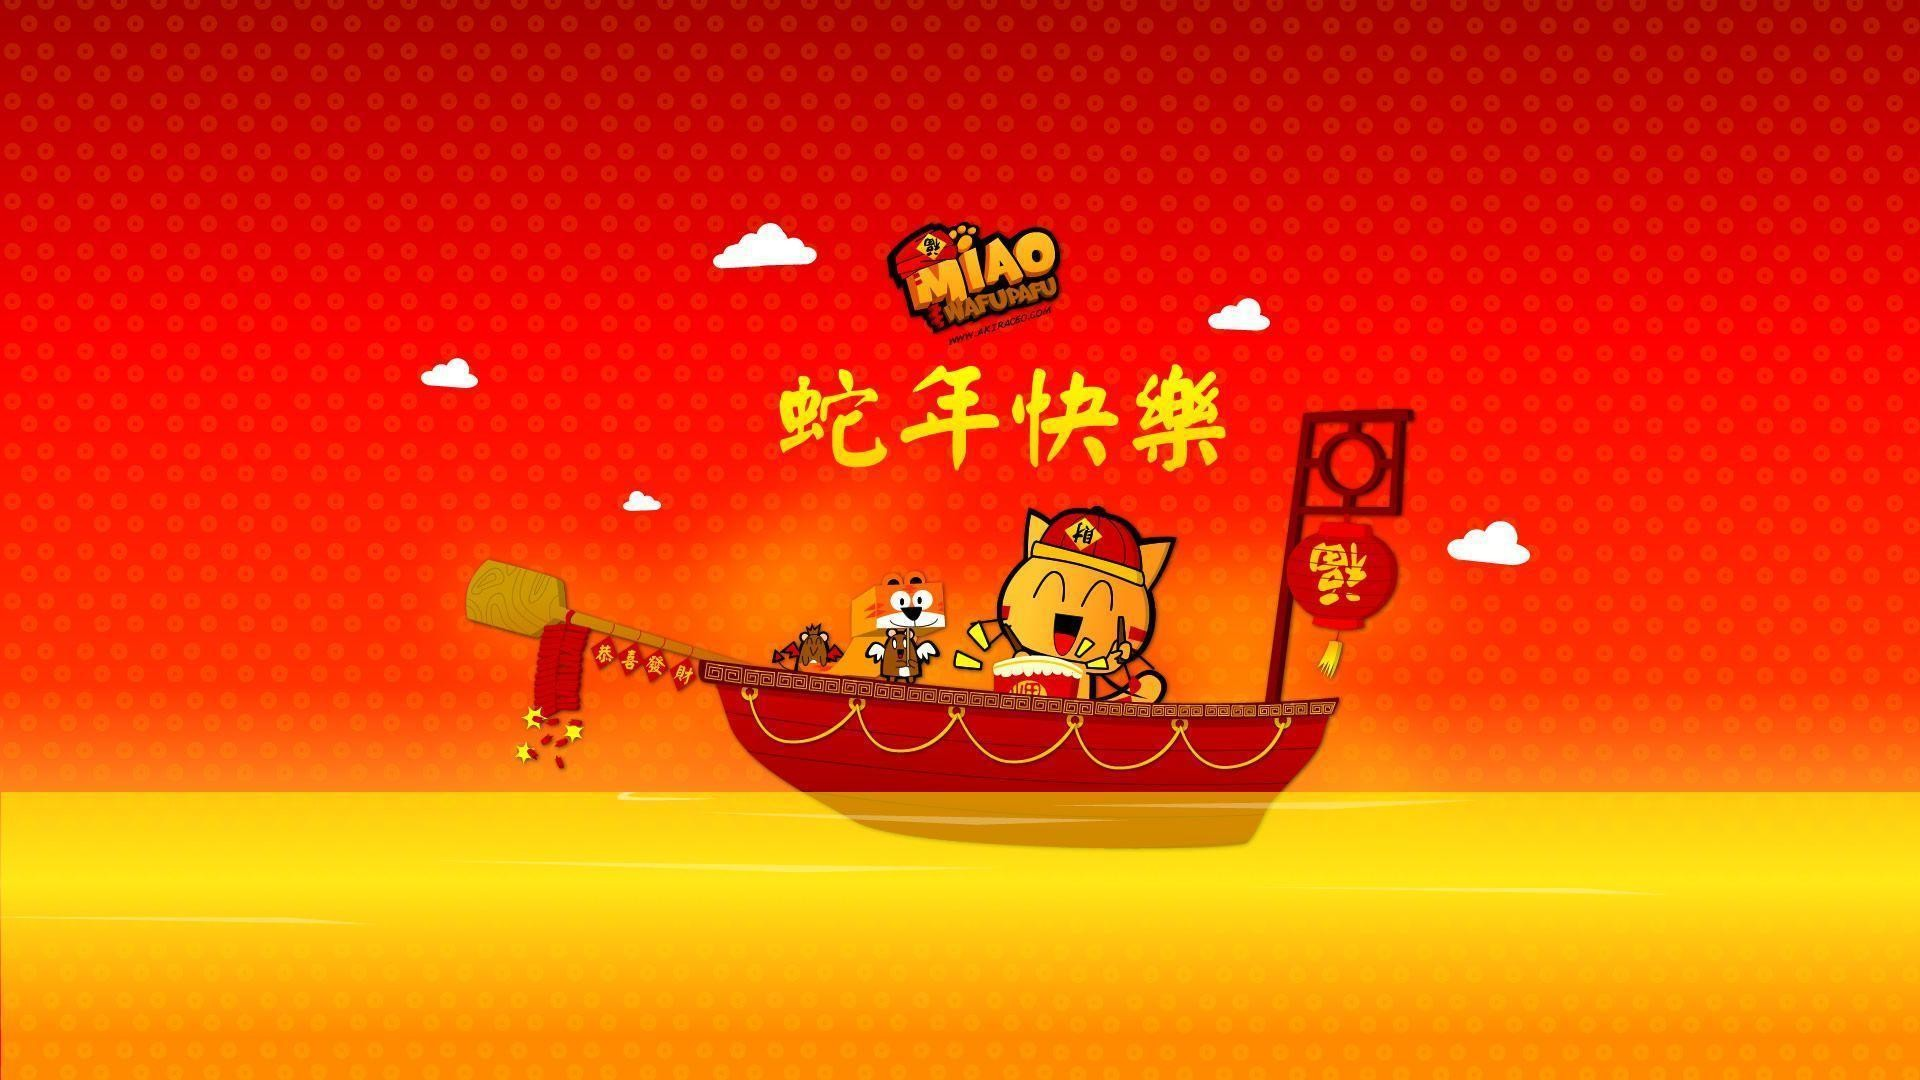 1920x1080 Chinese New Year Wallpaper #7038107